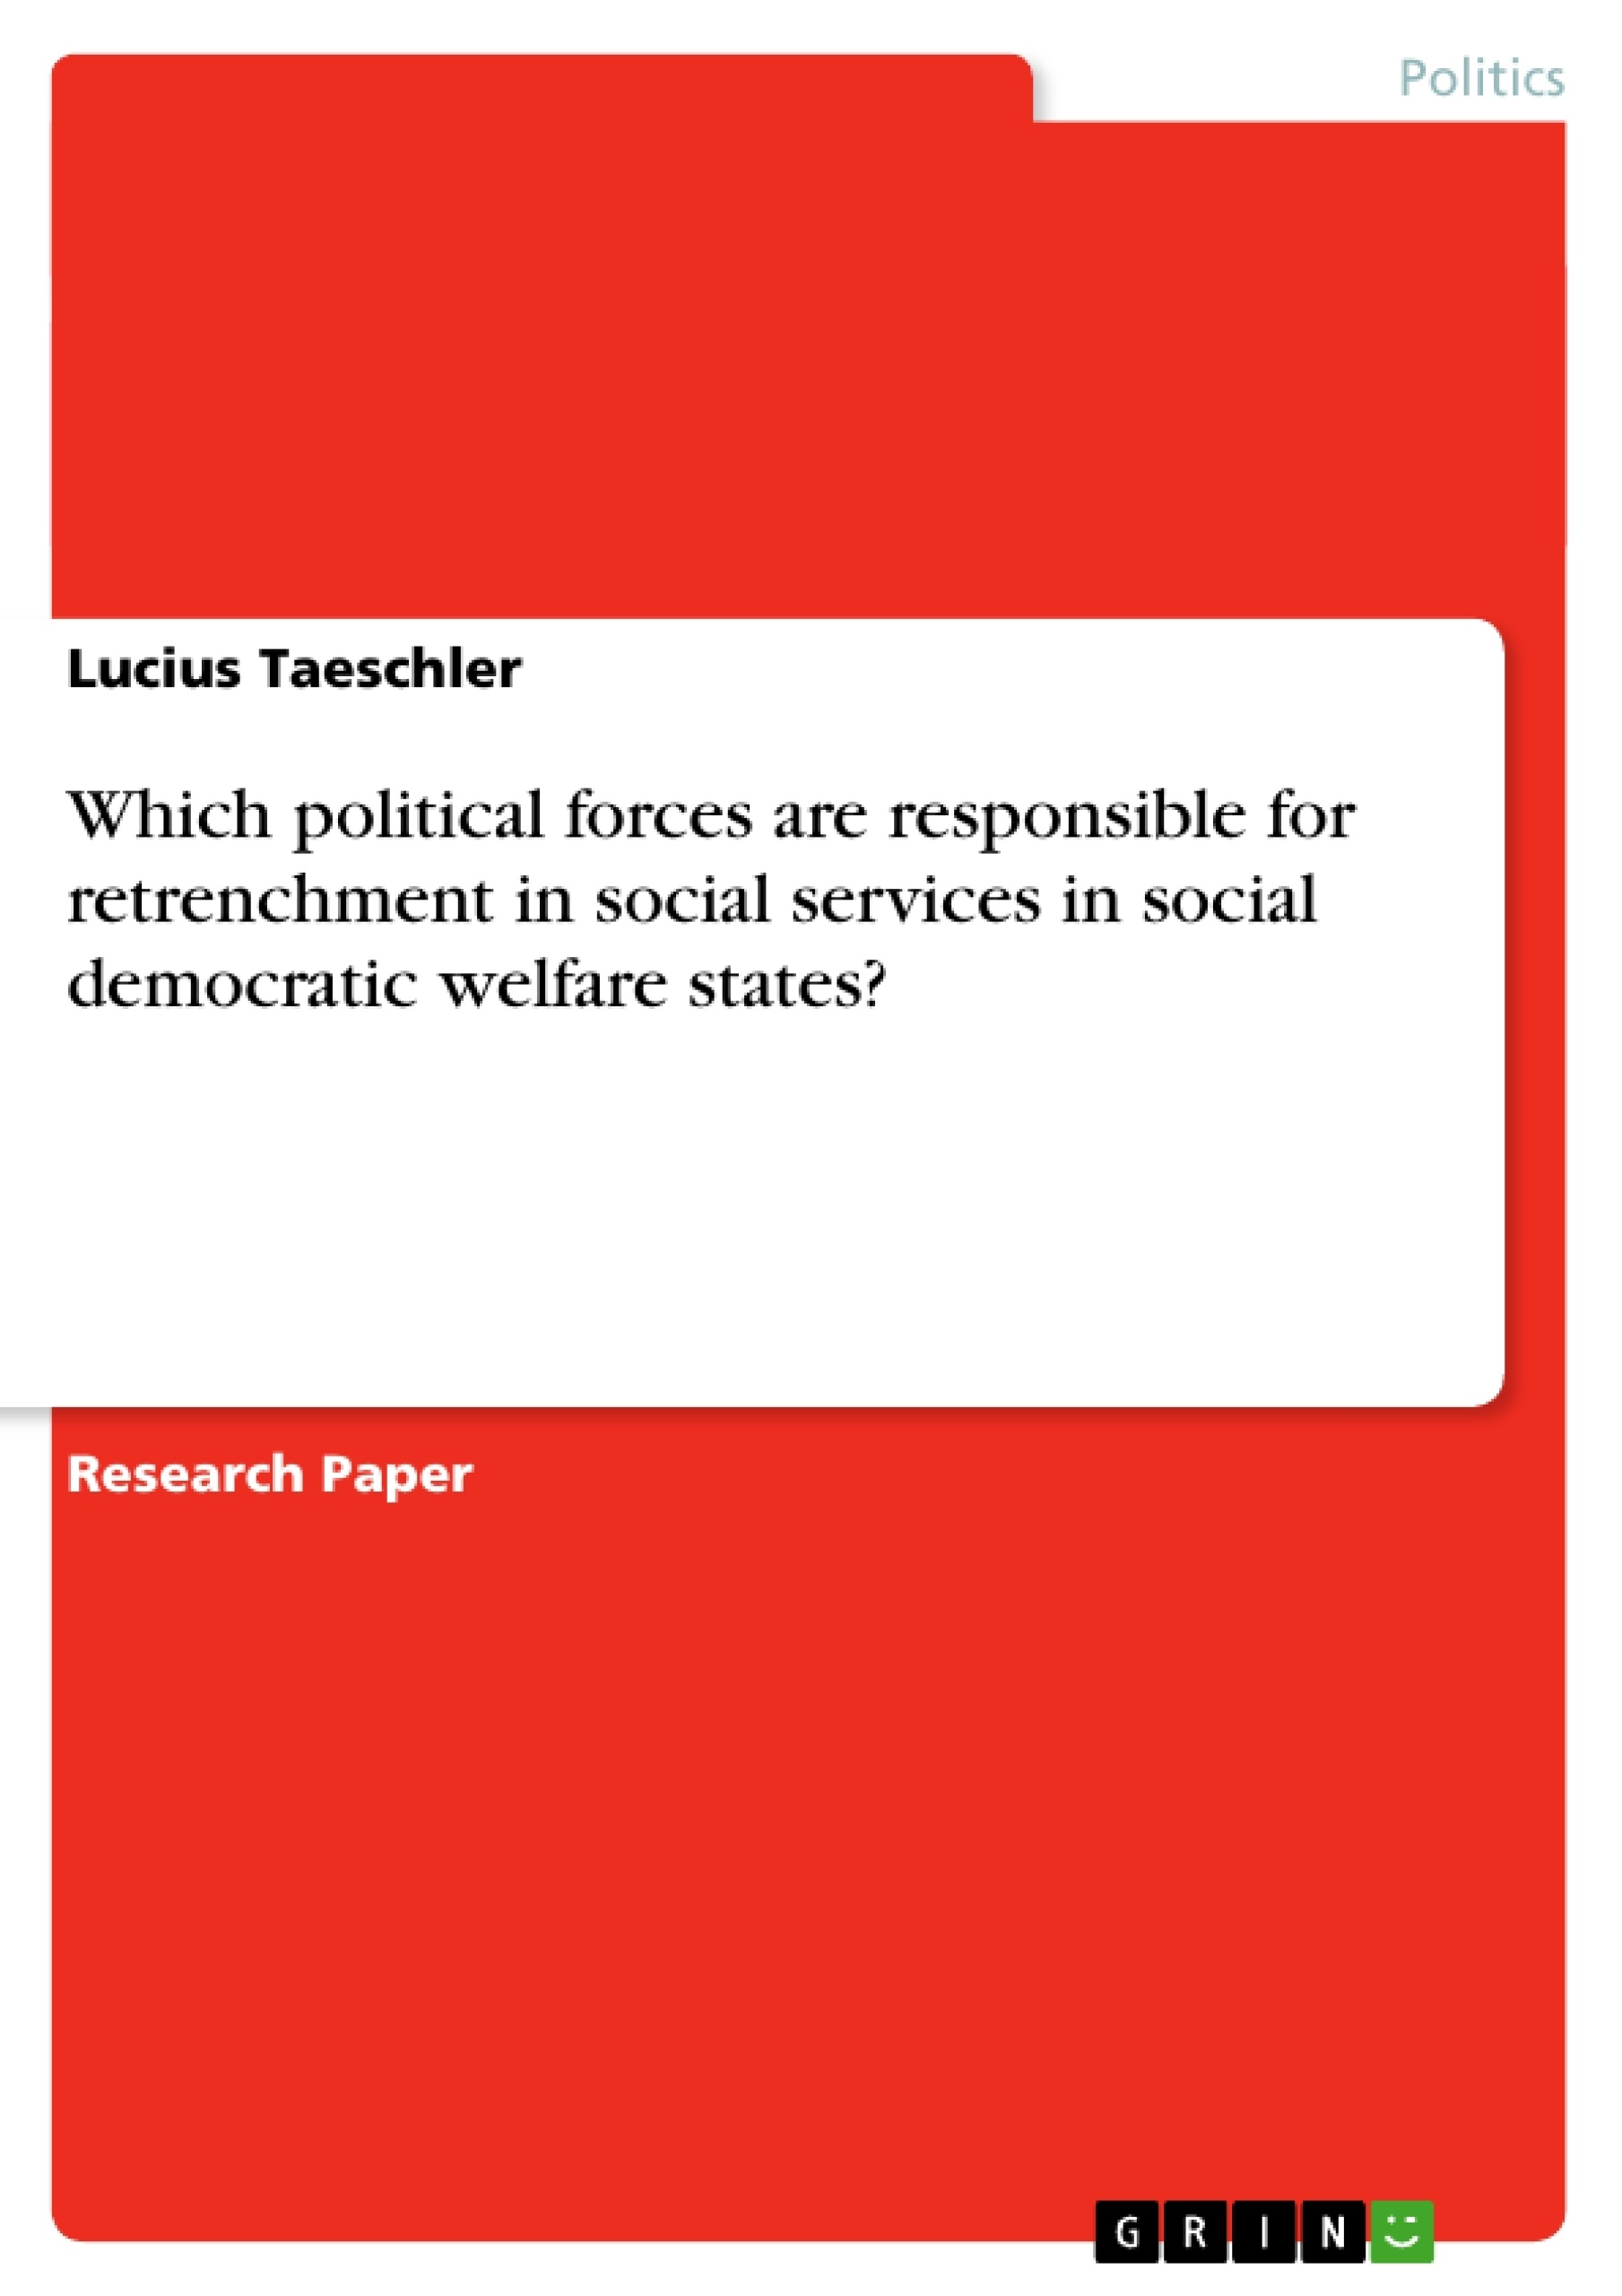 Title: Which political forces are responsible for retrenchment in social services in social democratic welfare states?